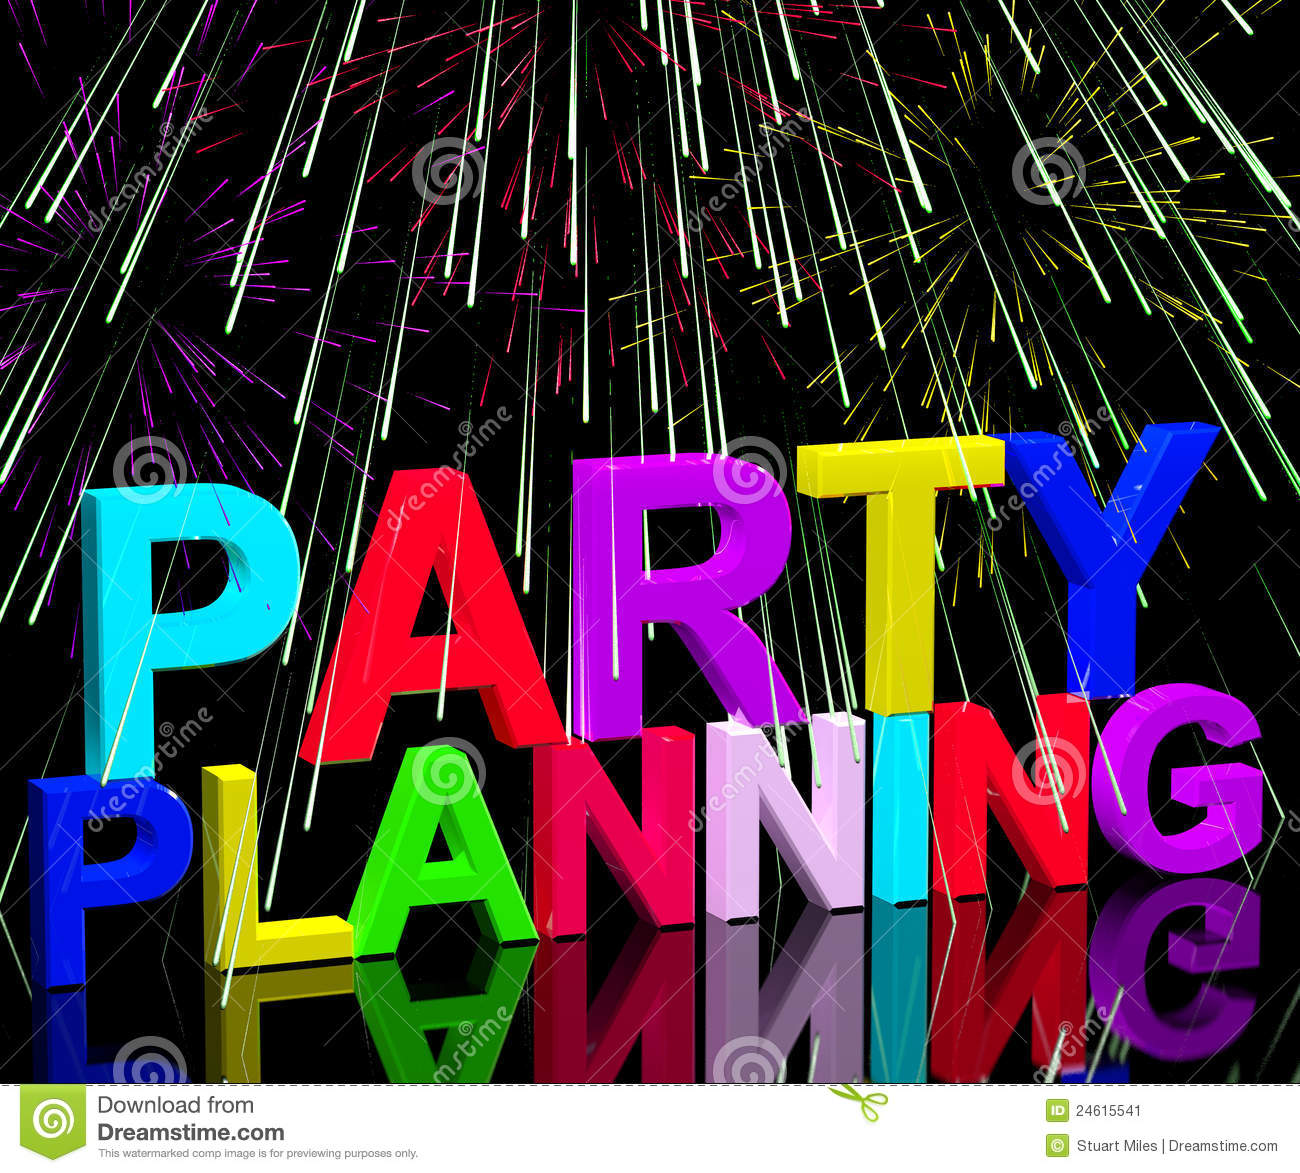 party planning words showing birthday or anniversary celebration